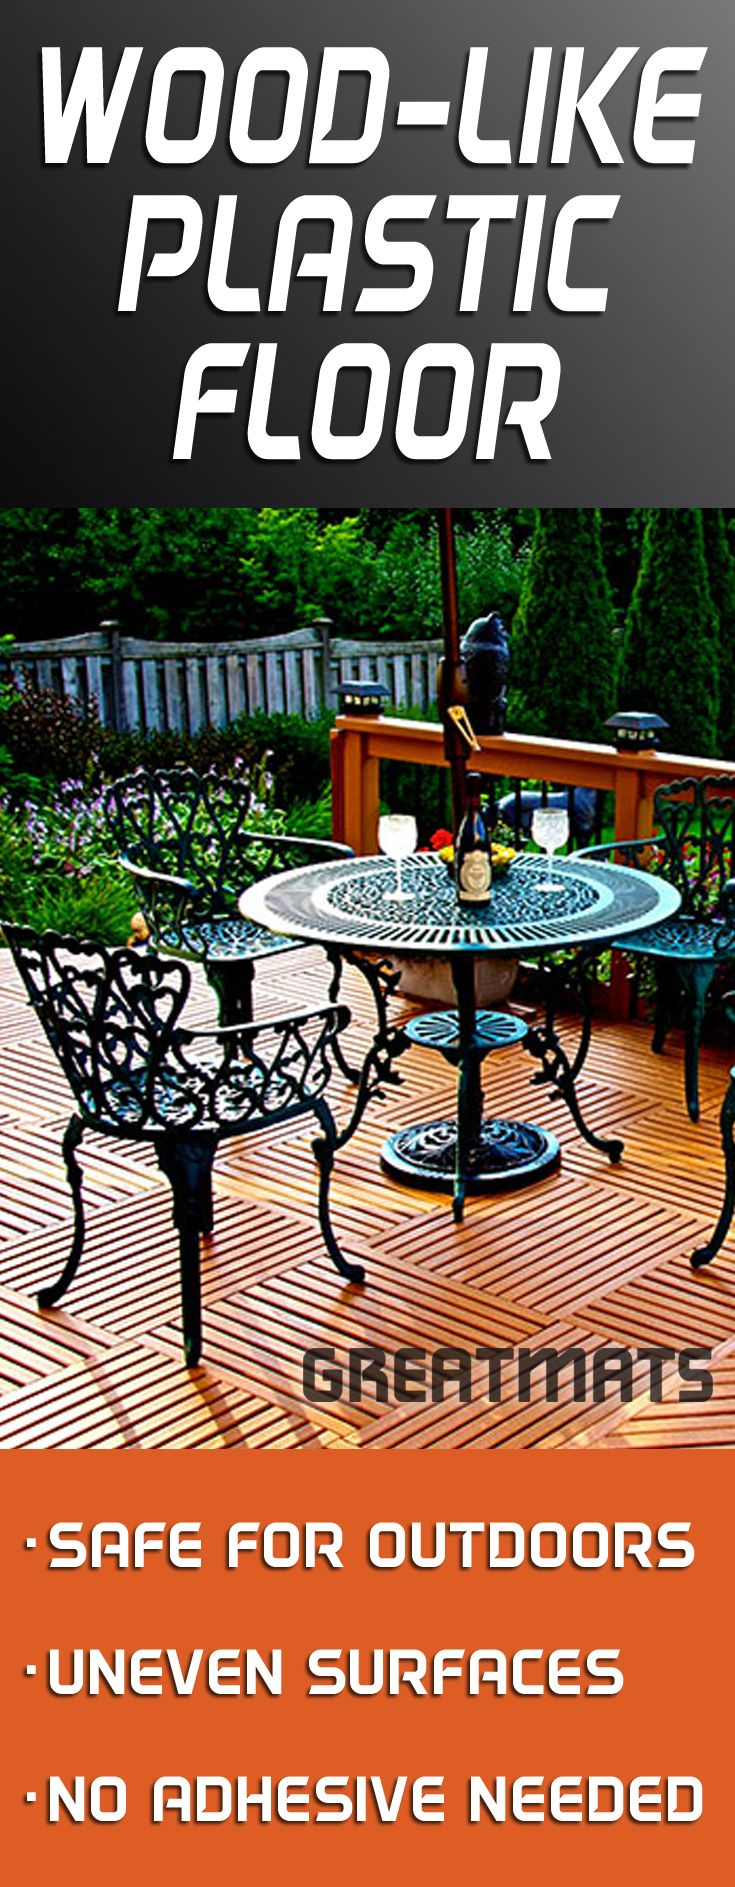 Plastic Floor and Wood Plank Look - the best of both world come together for GreatDeck Outdoor Plastic Deck Tiles.